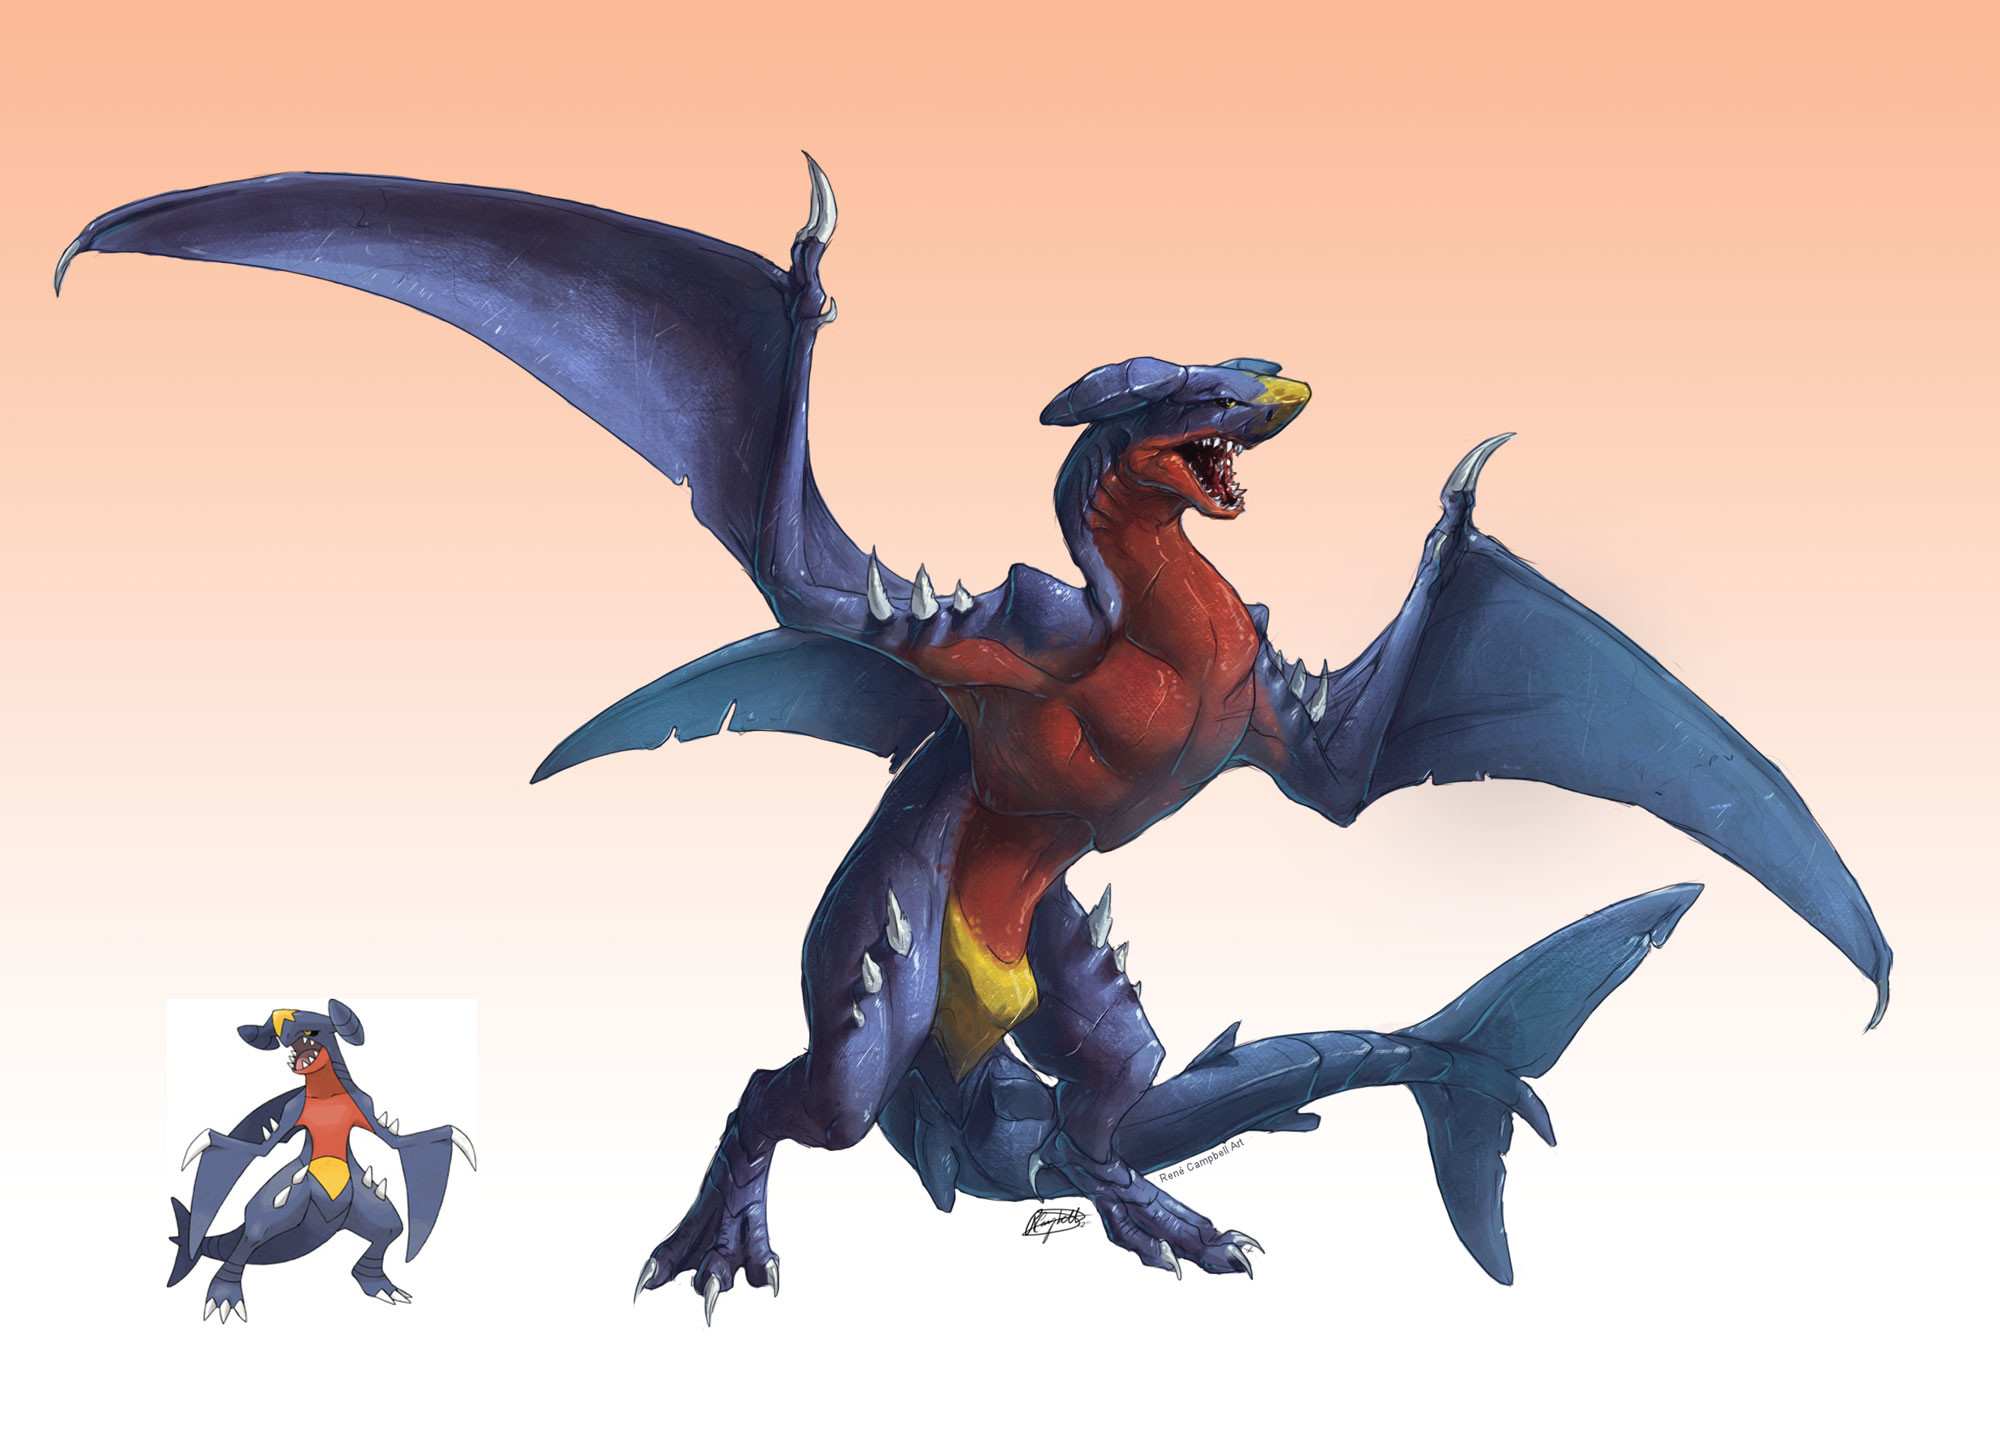 Res: 2000x1440, Realistic Pokemon: Garchomp by ReneCampbellArt Realistic Pokemon: Garchomp  by ReneCampbellArt